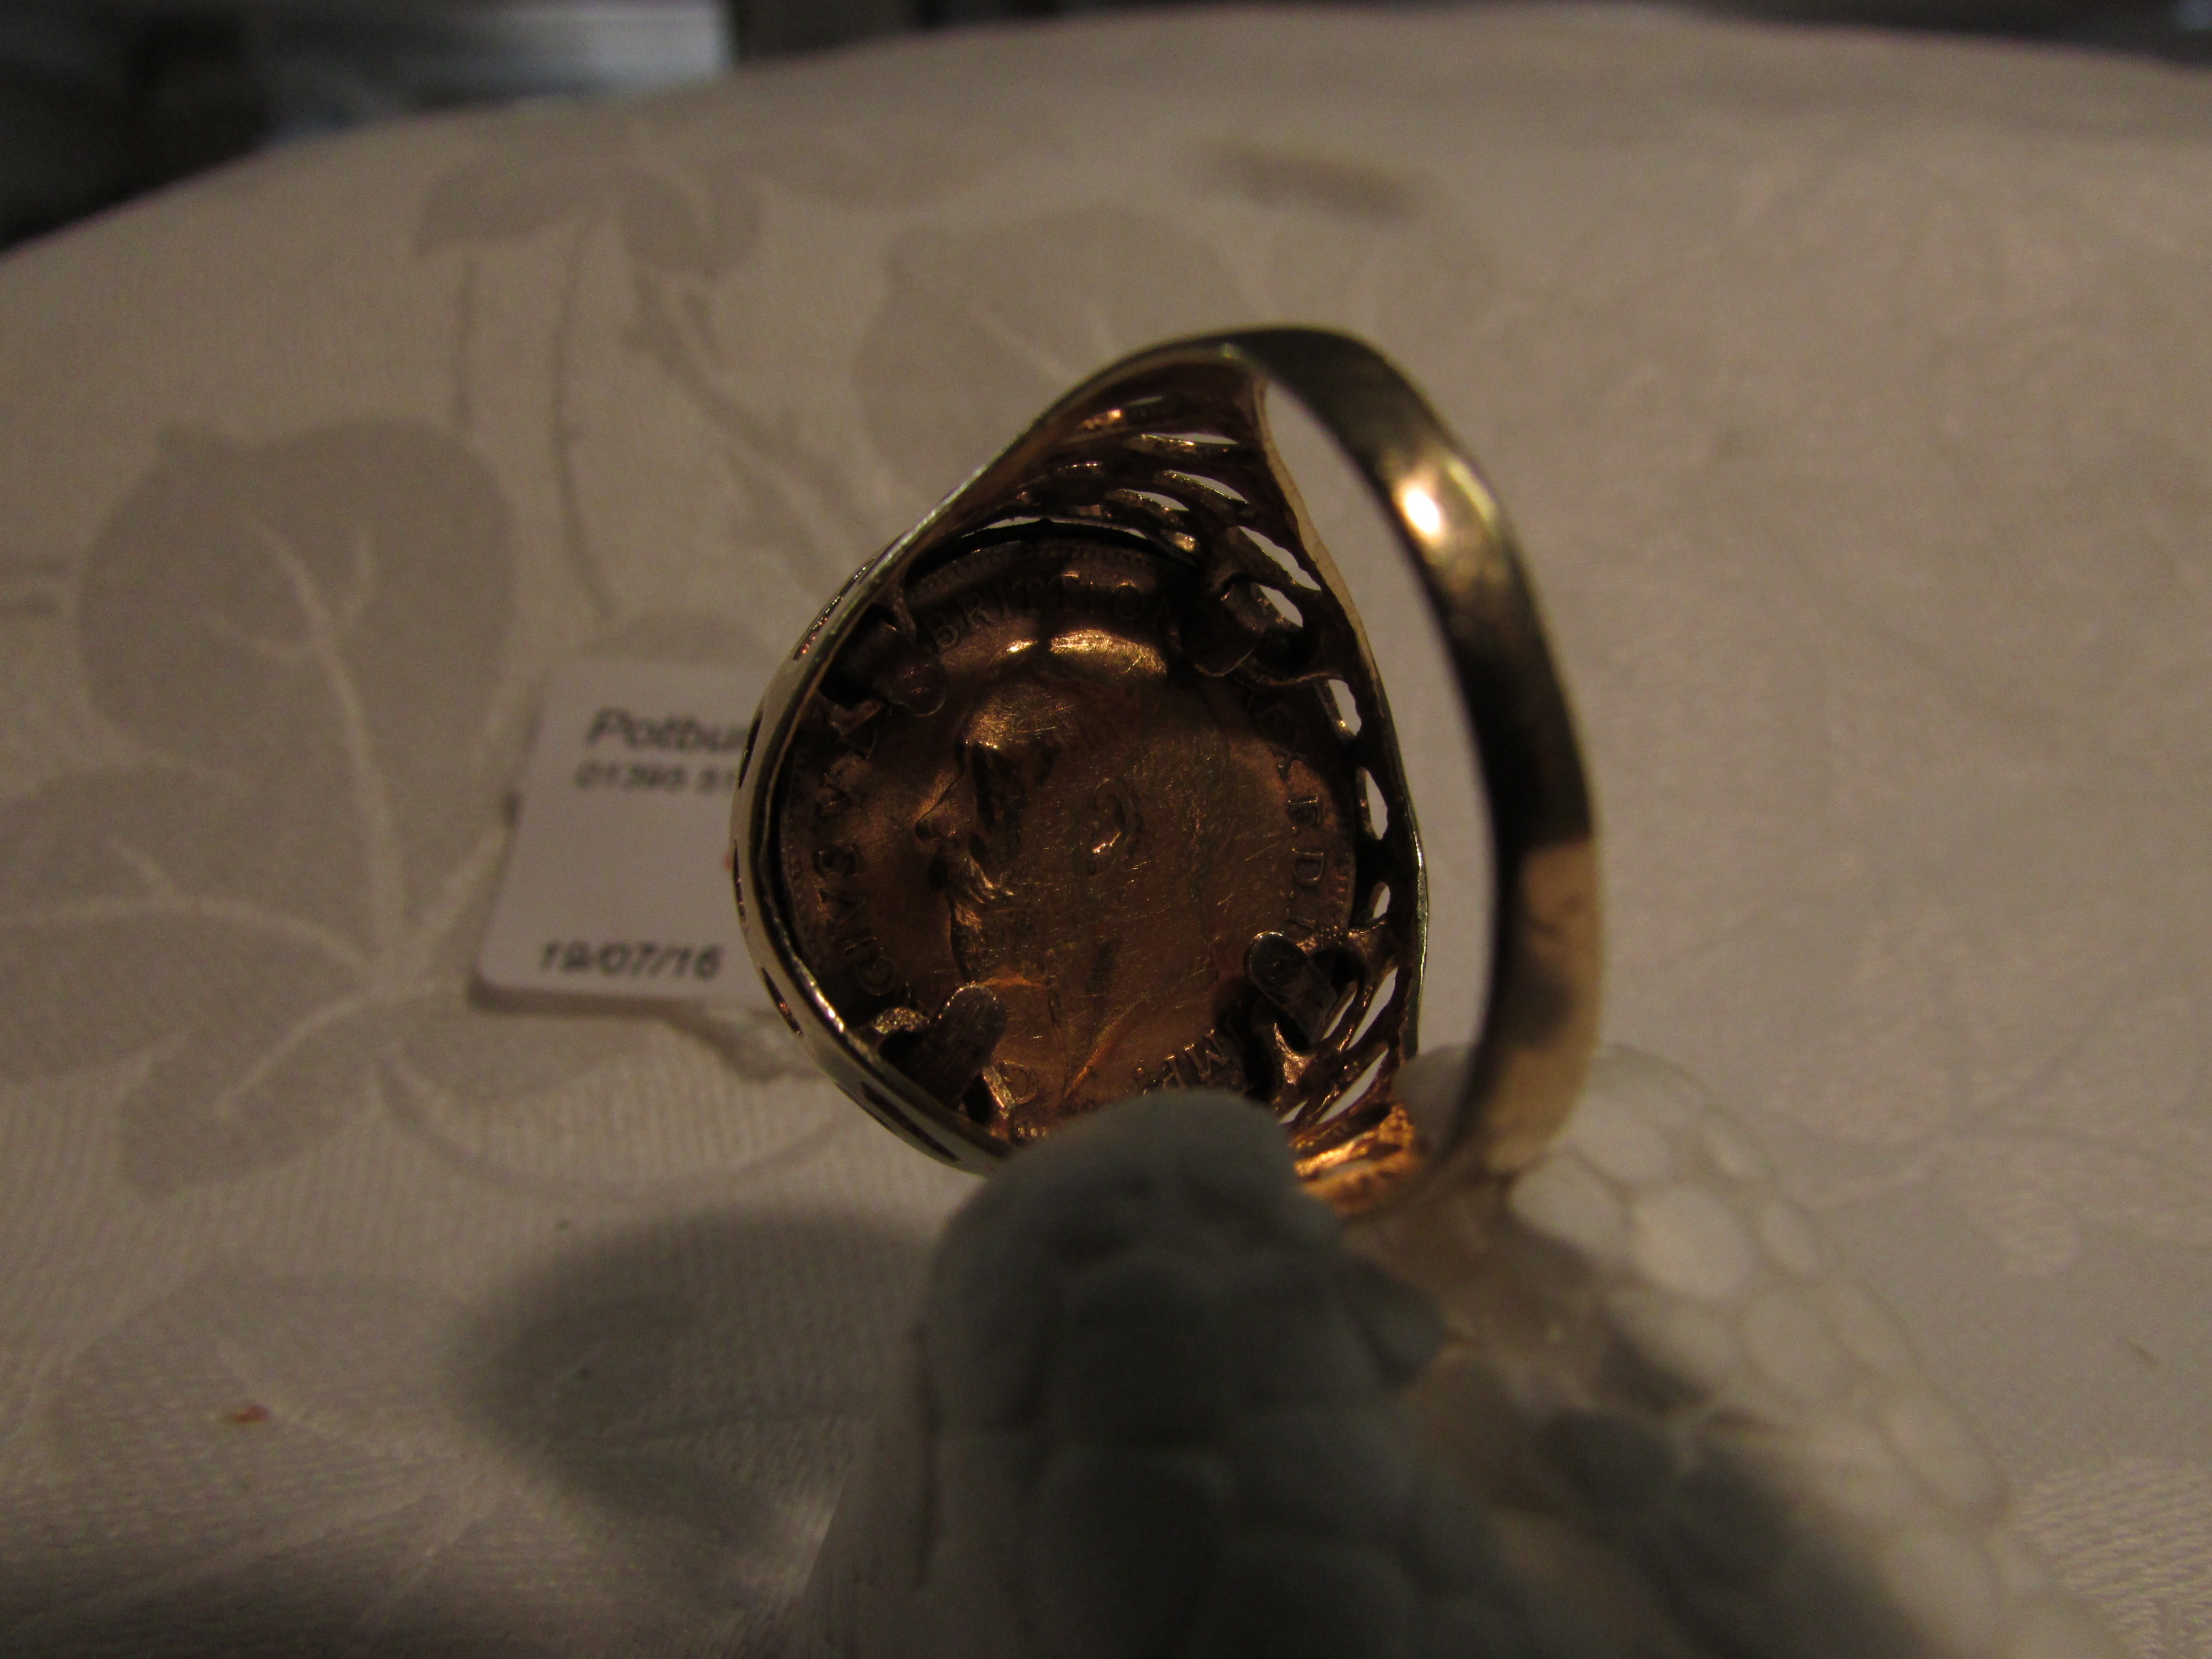 Lot 163 - 9ct gold gentleman's ring set with a 1914 half sovereign, 7.2g